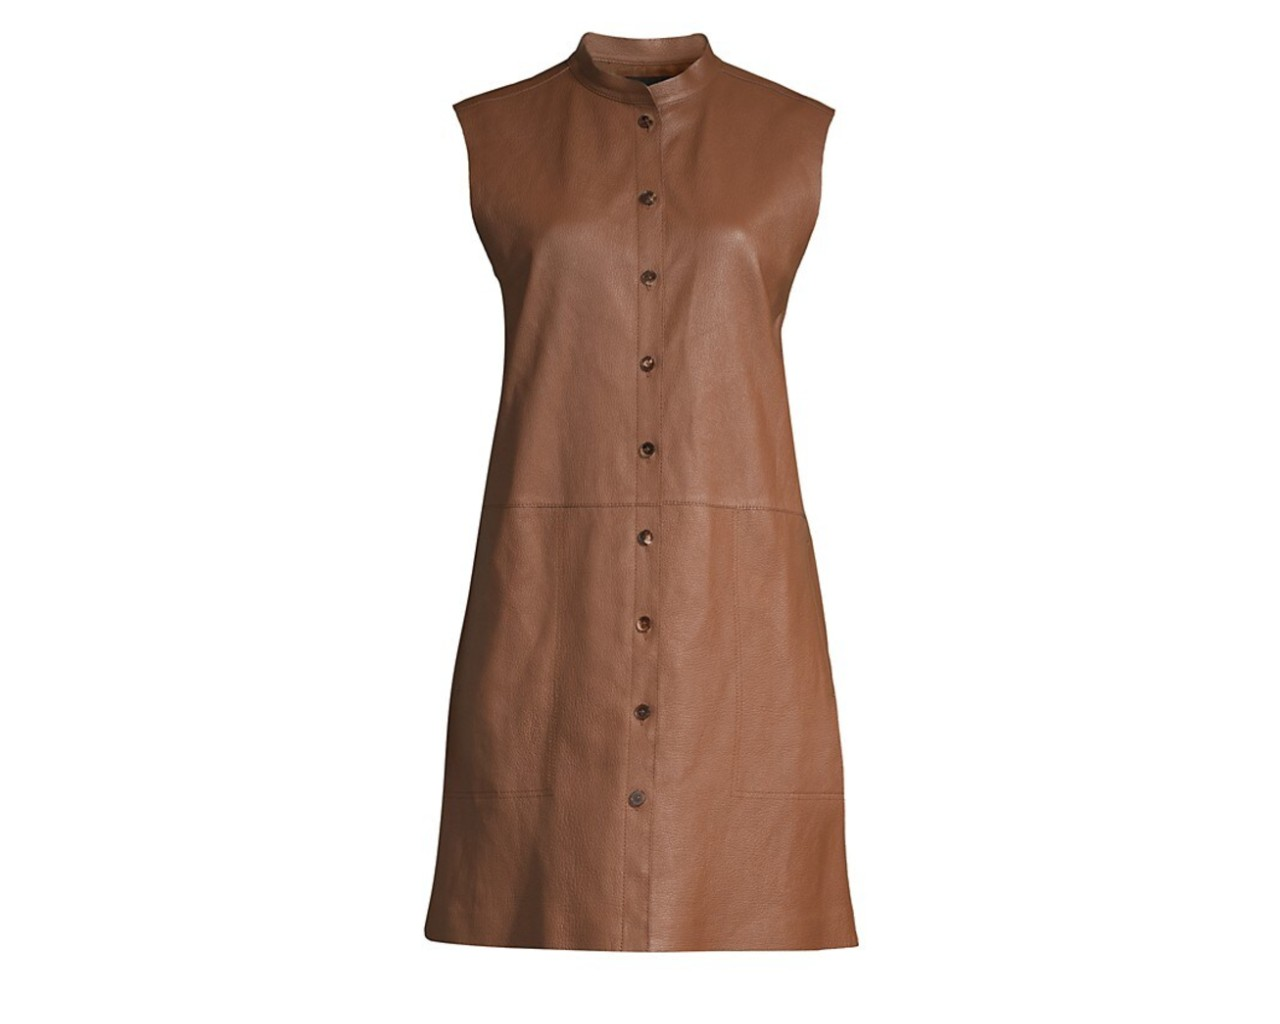 Lafayette 148 New York Malva Lamb Leather Longline Vest, inspired by Bella Hadid's brown leather vest